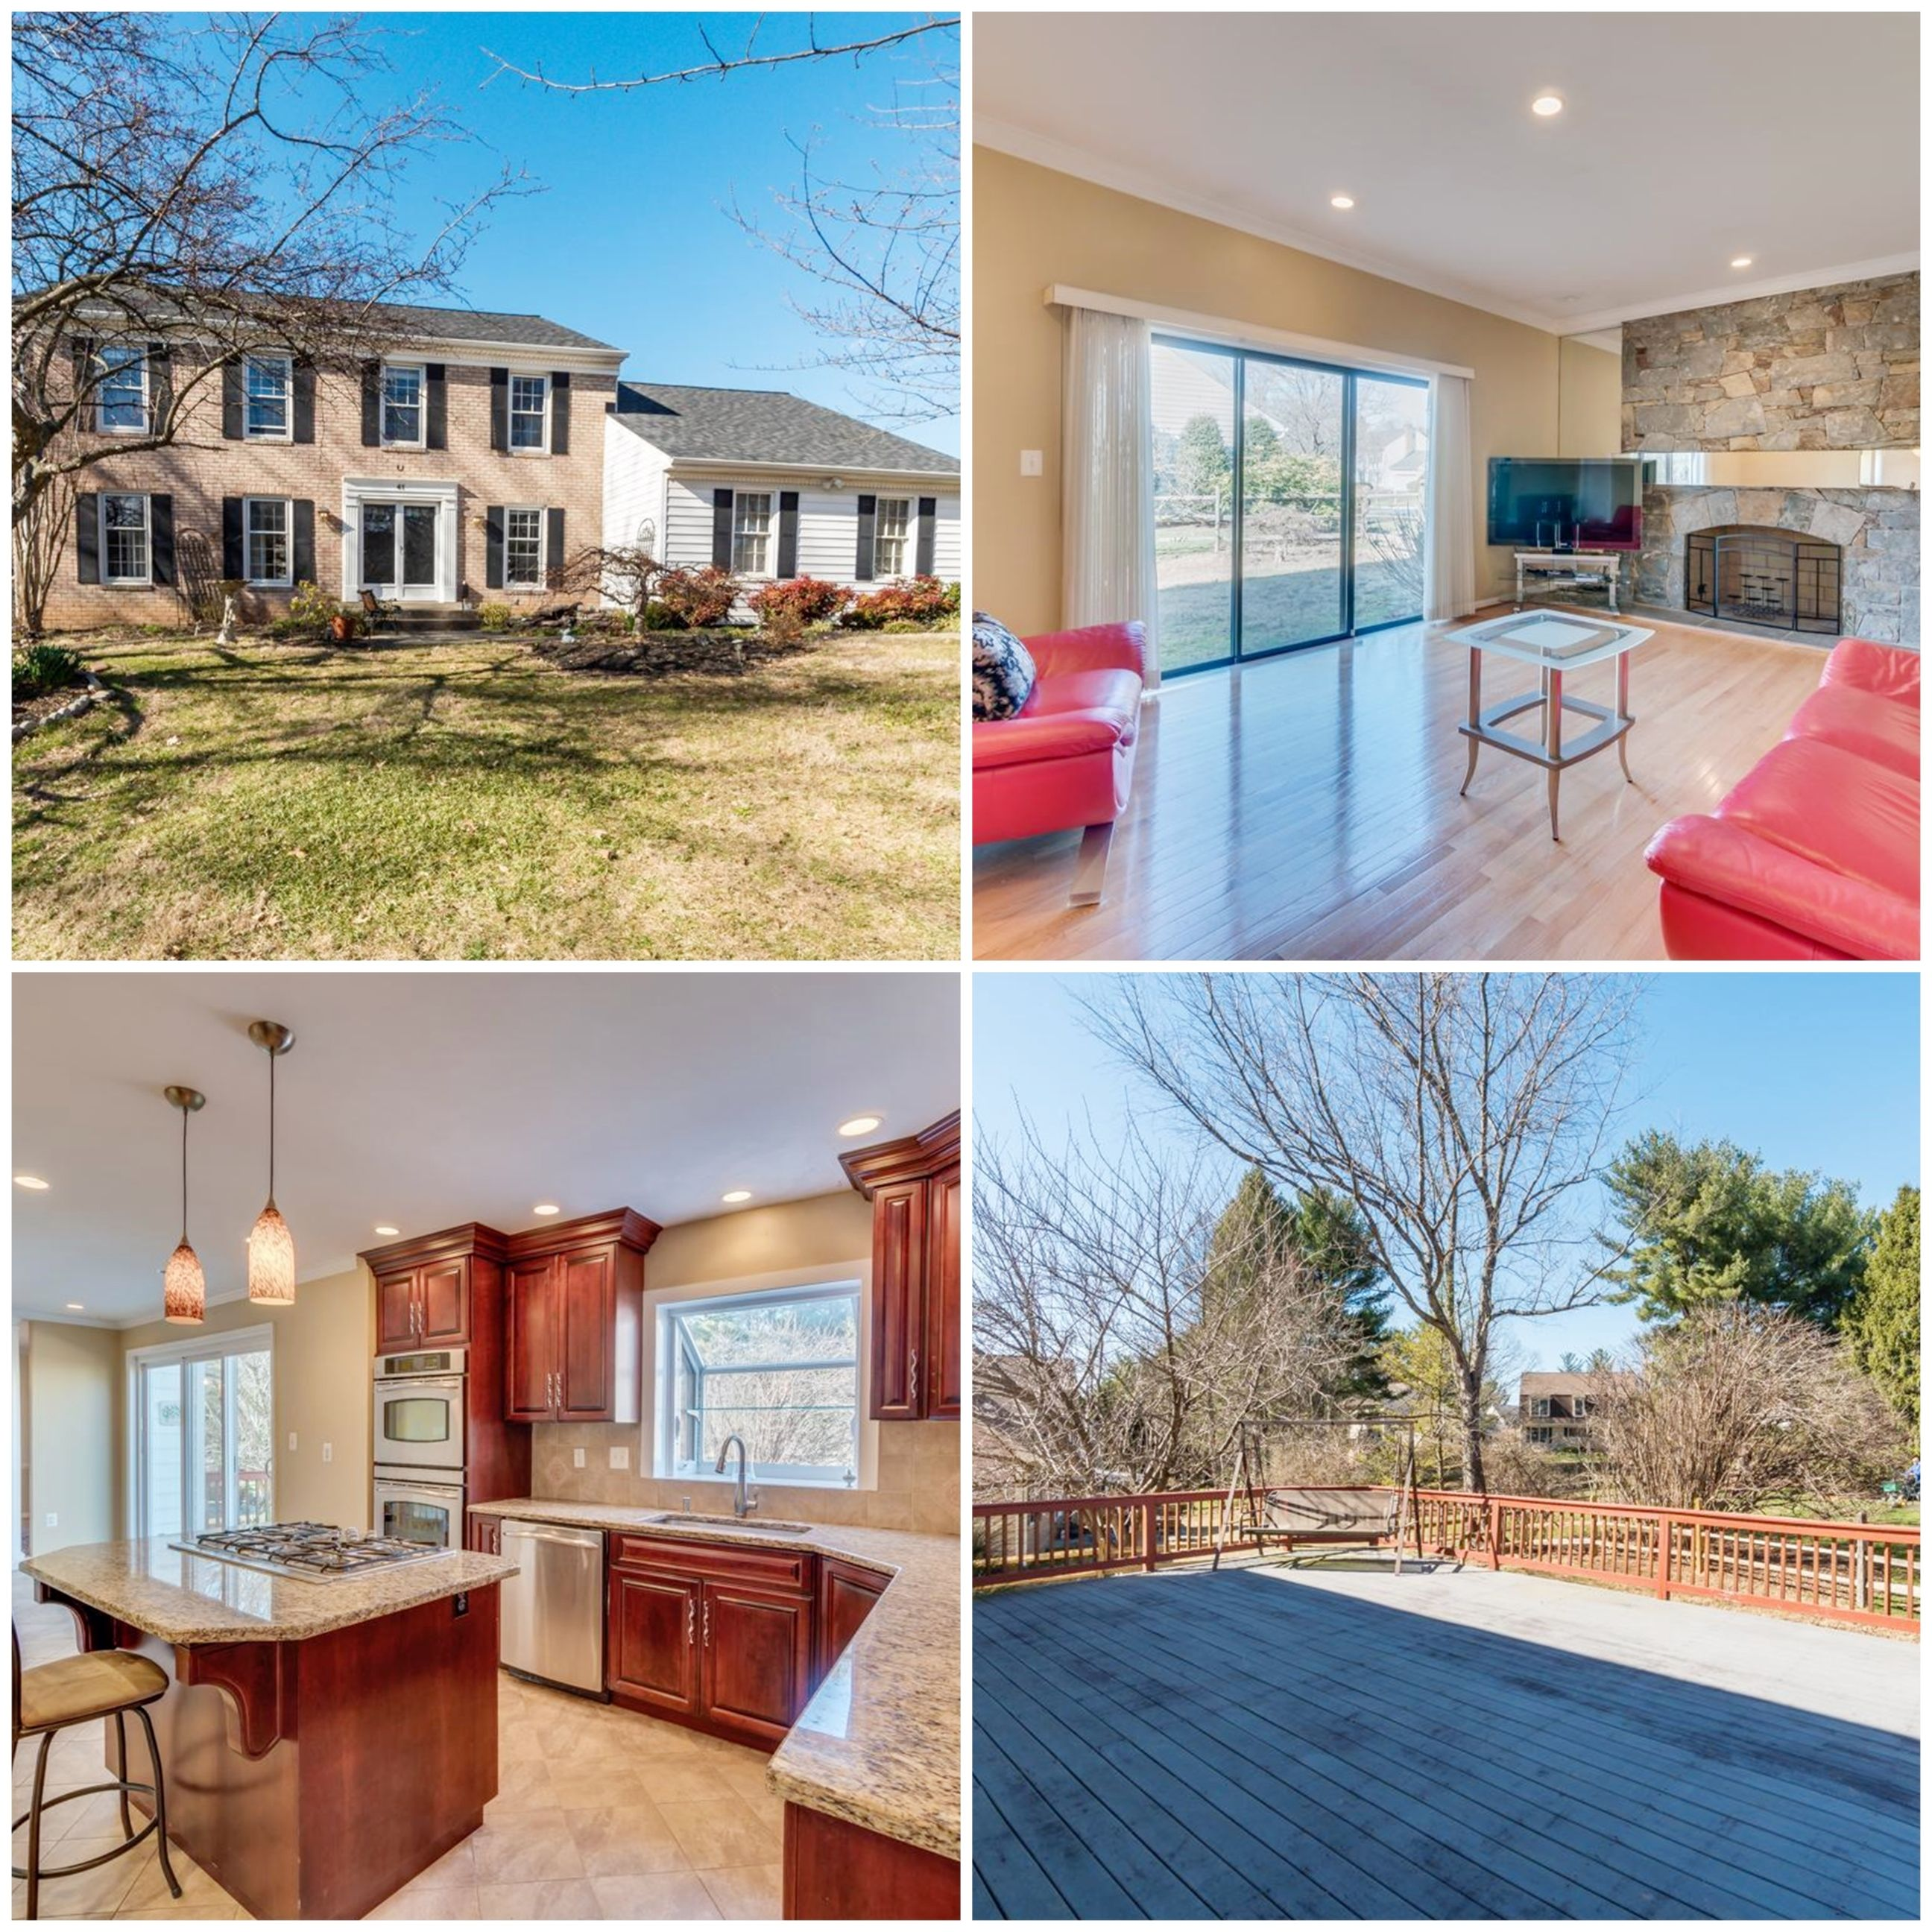 #CAZAListing 41 Hollyberry Ct, Rockville, MD 20852 MLS MDMC699140 🛏🛏 5 🛁🛁 3.5 ☑️ Spacious and updated Colonial in sought-after North Farm Get More Info or Schedule a Virtual or In-person Home Tour - CALL 703.651.6735 #Homes #HomeBuying #Realtor